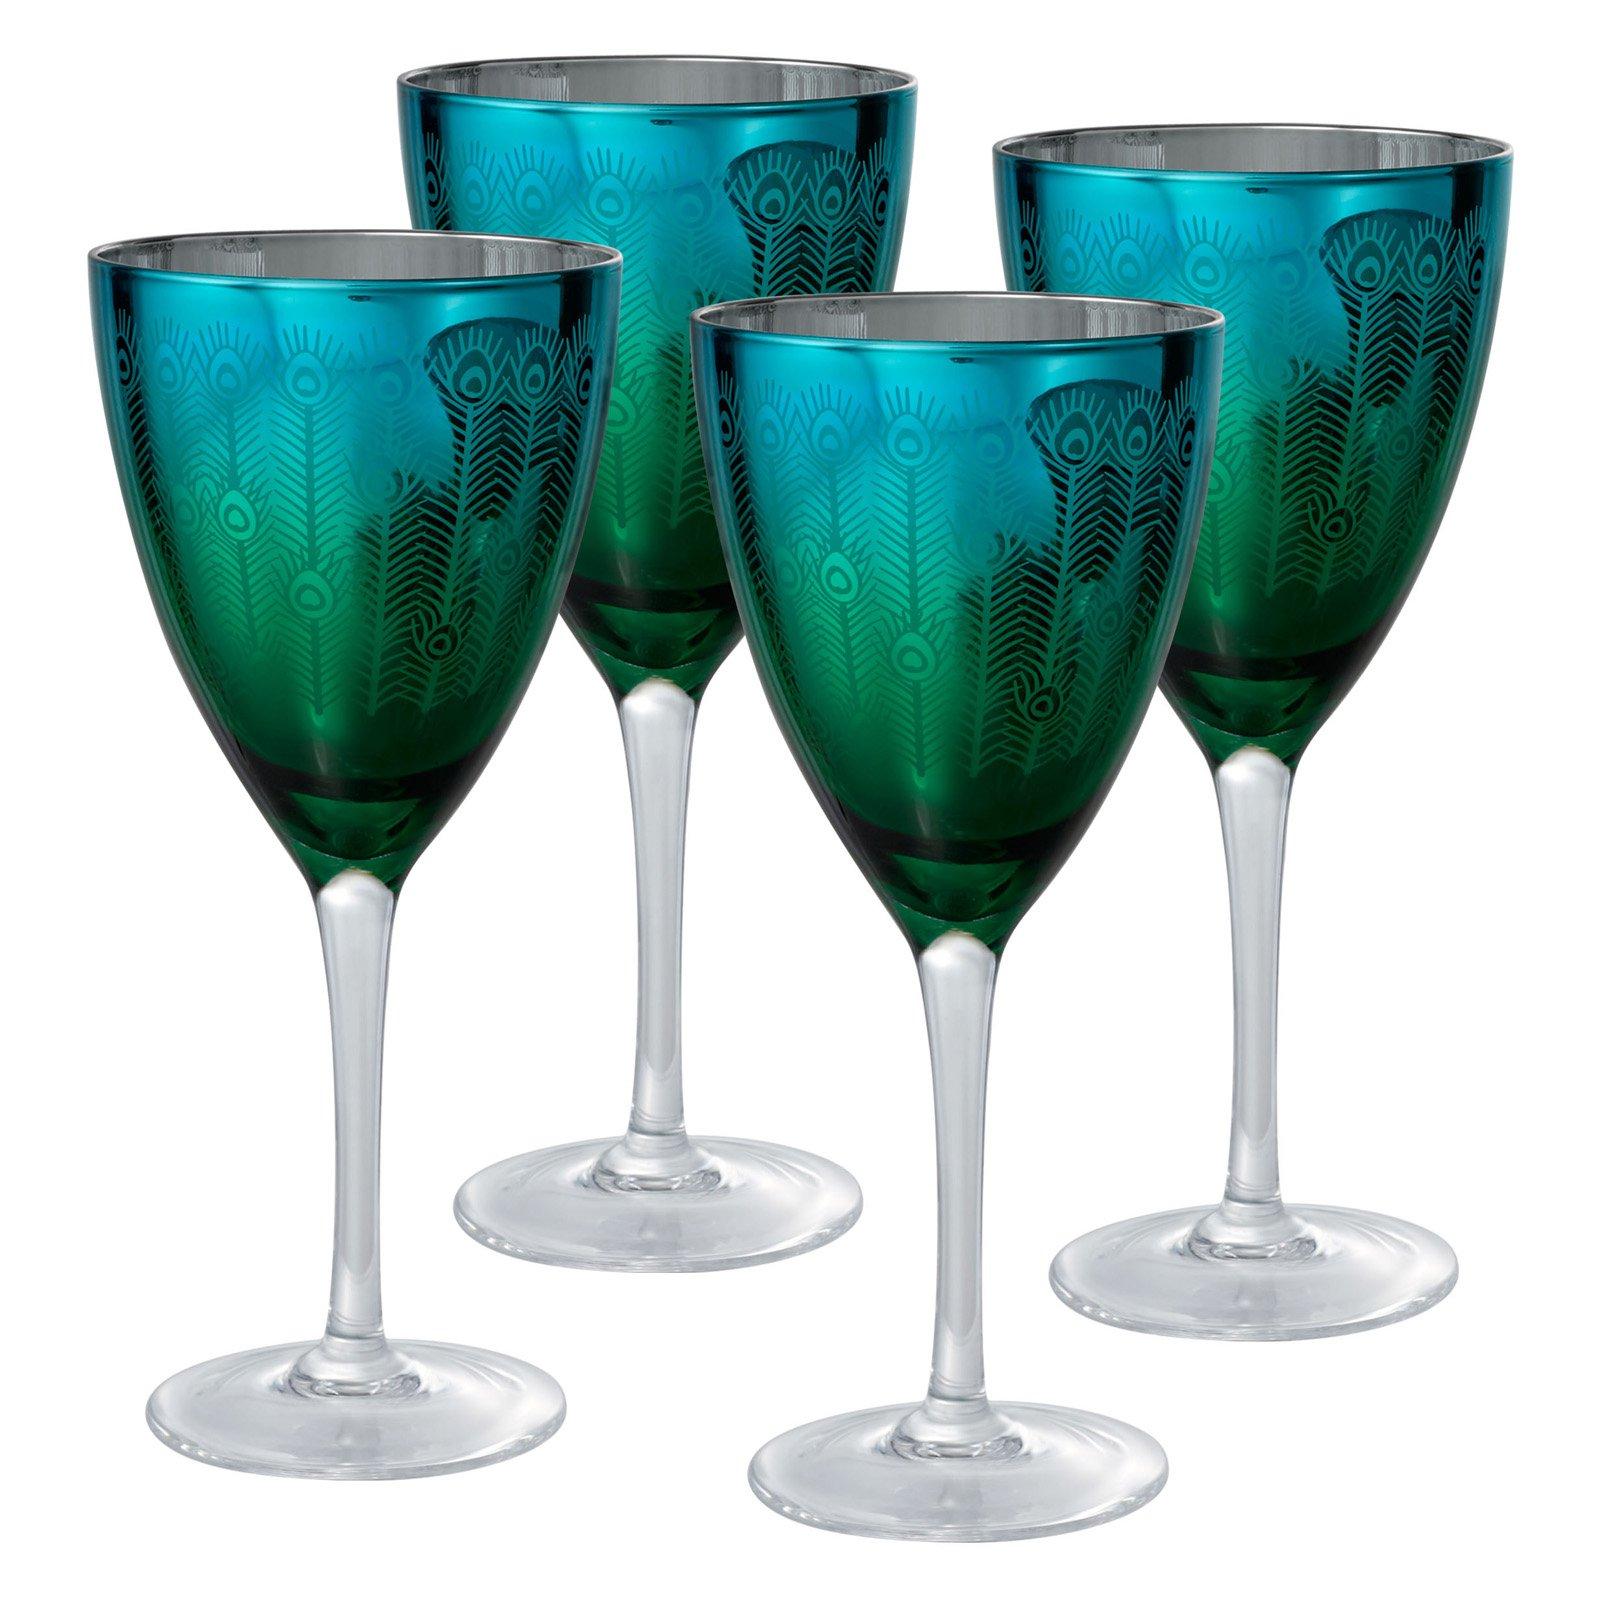 Artland Inc. Peacock Wine Glasses - Set of 4